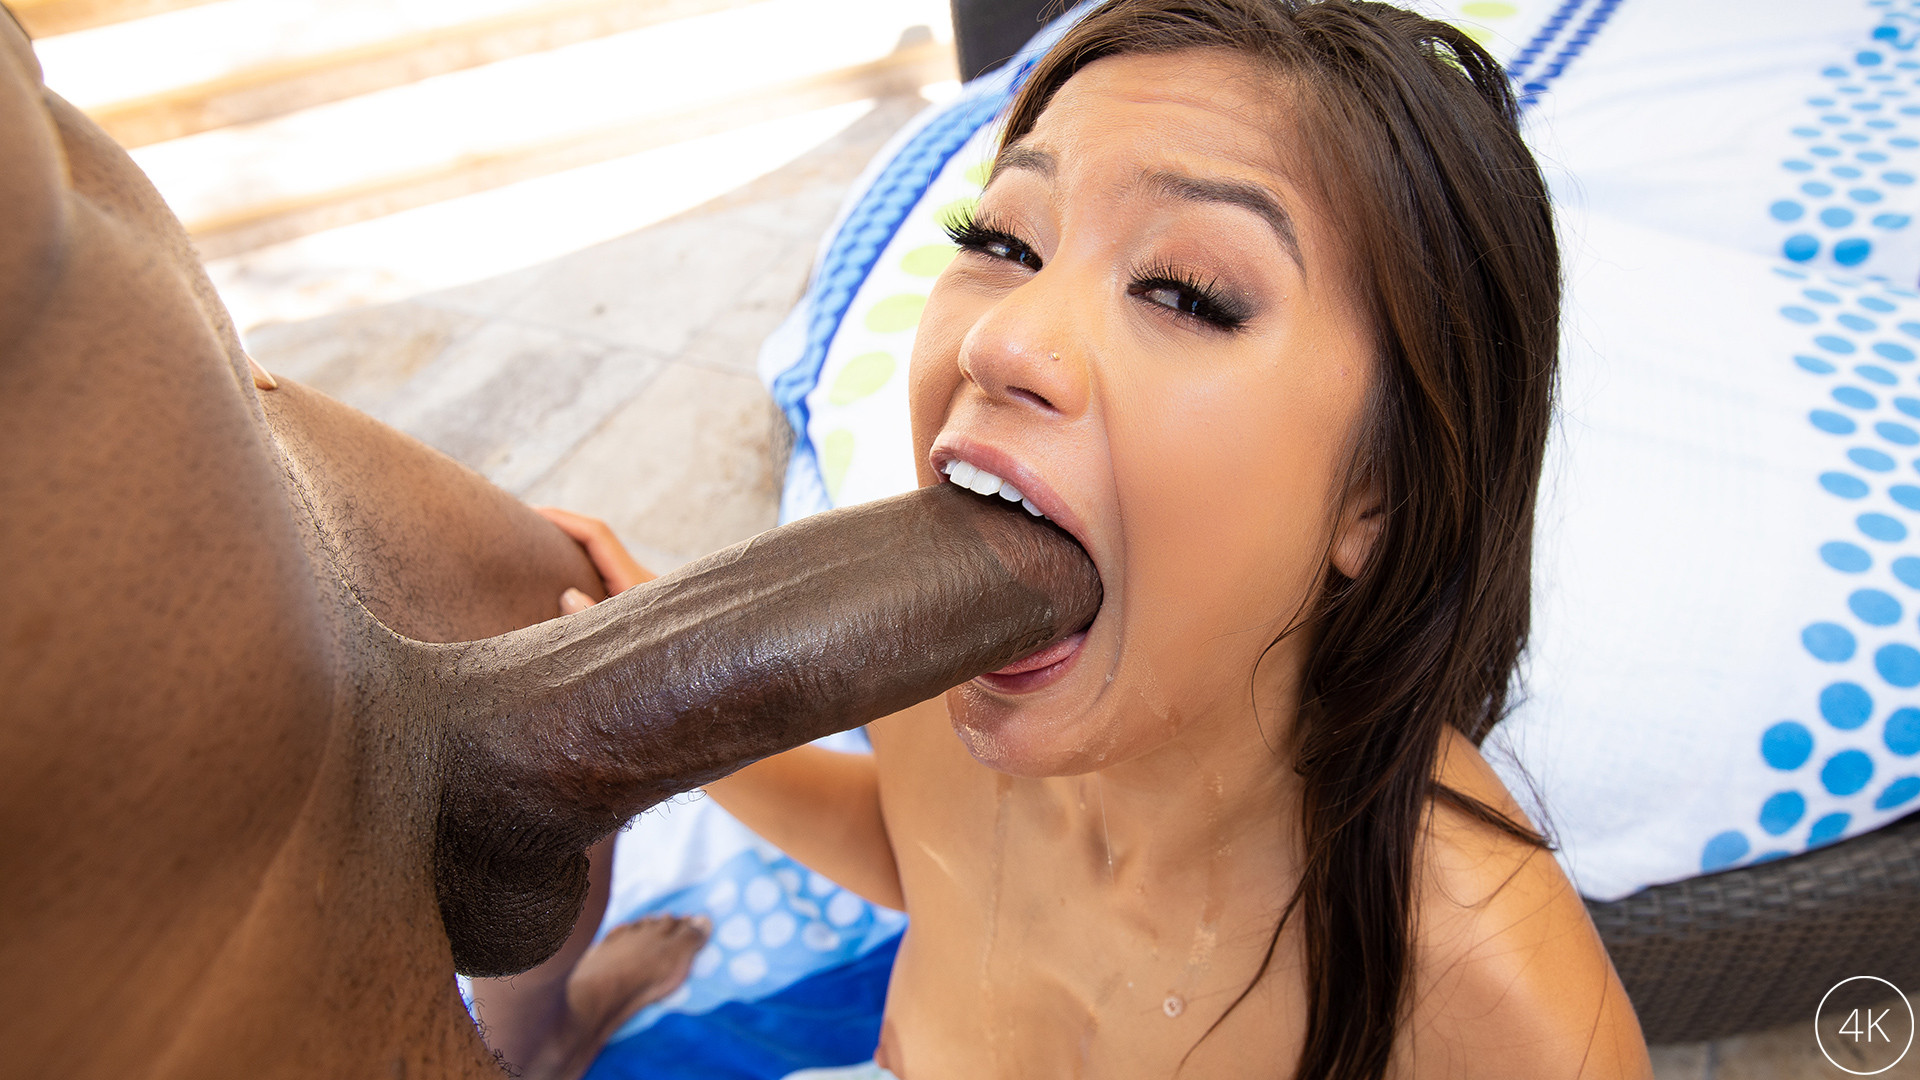 Download JulesJordan.com - Kendra Spade Has Her Tanning Session Interrupted By Dredd